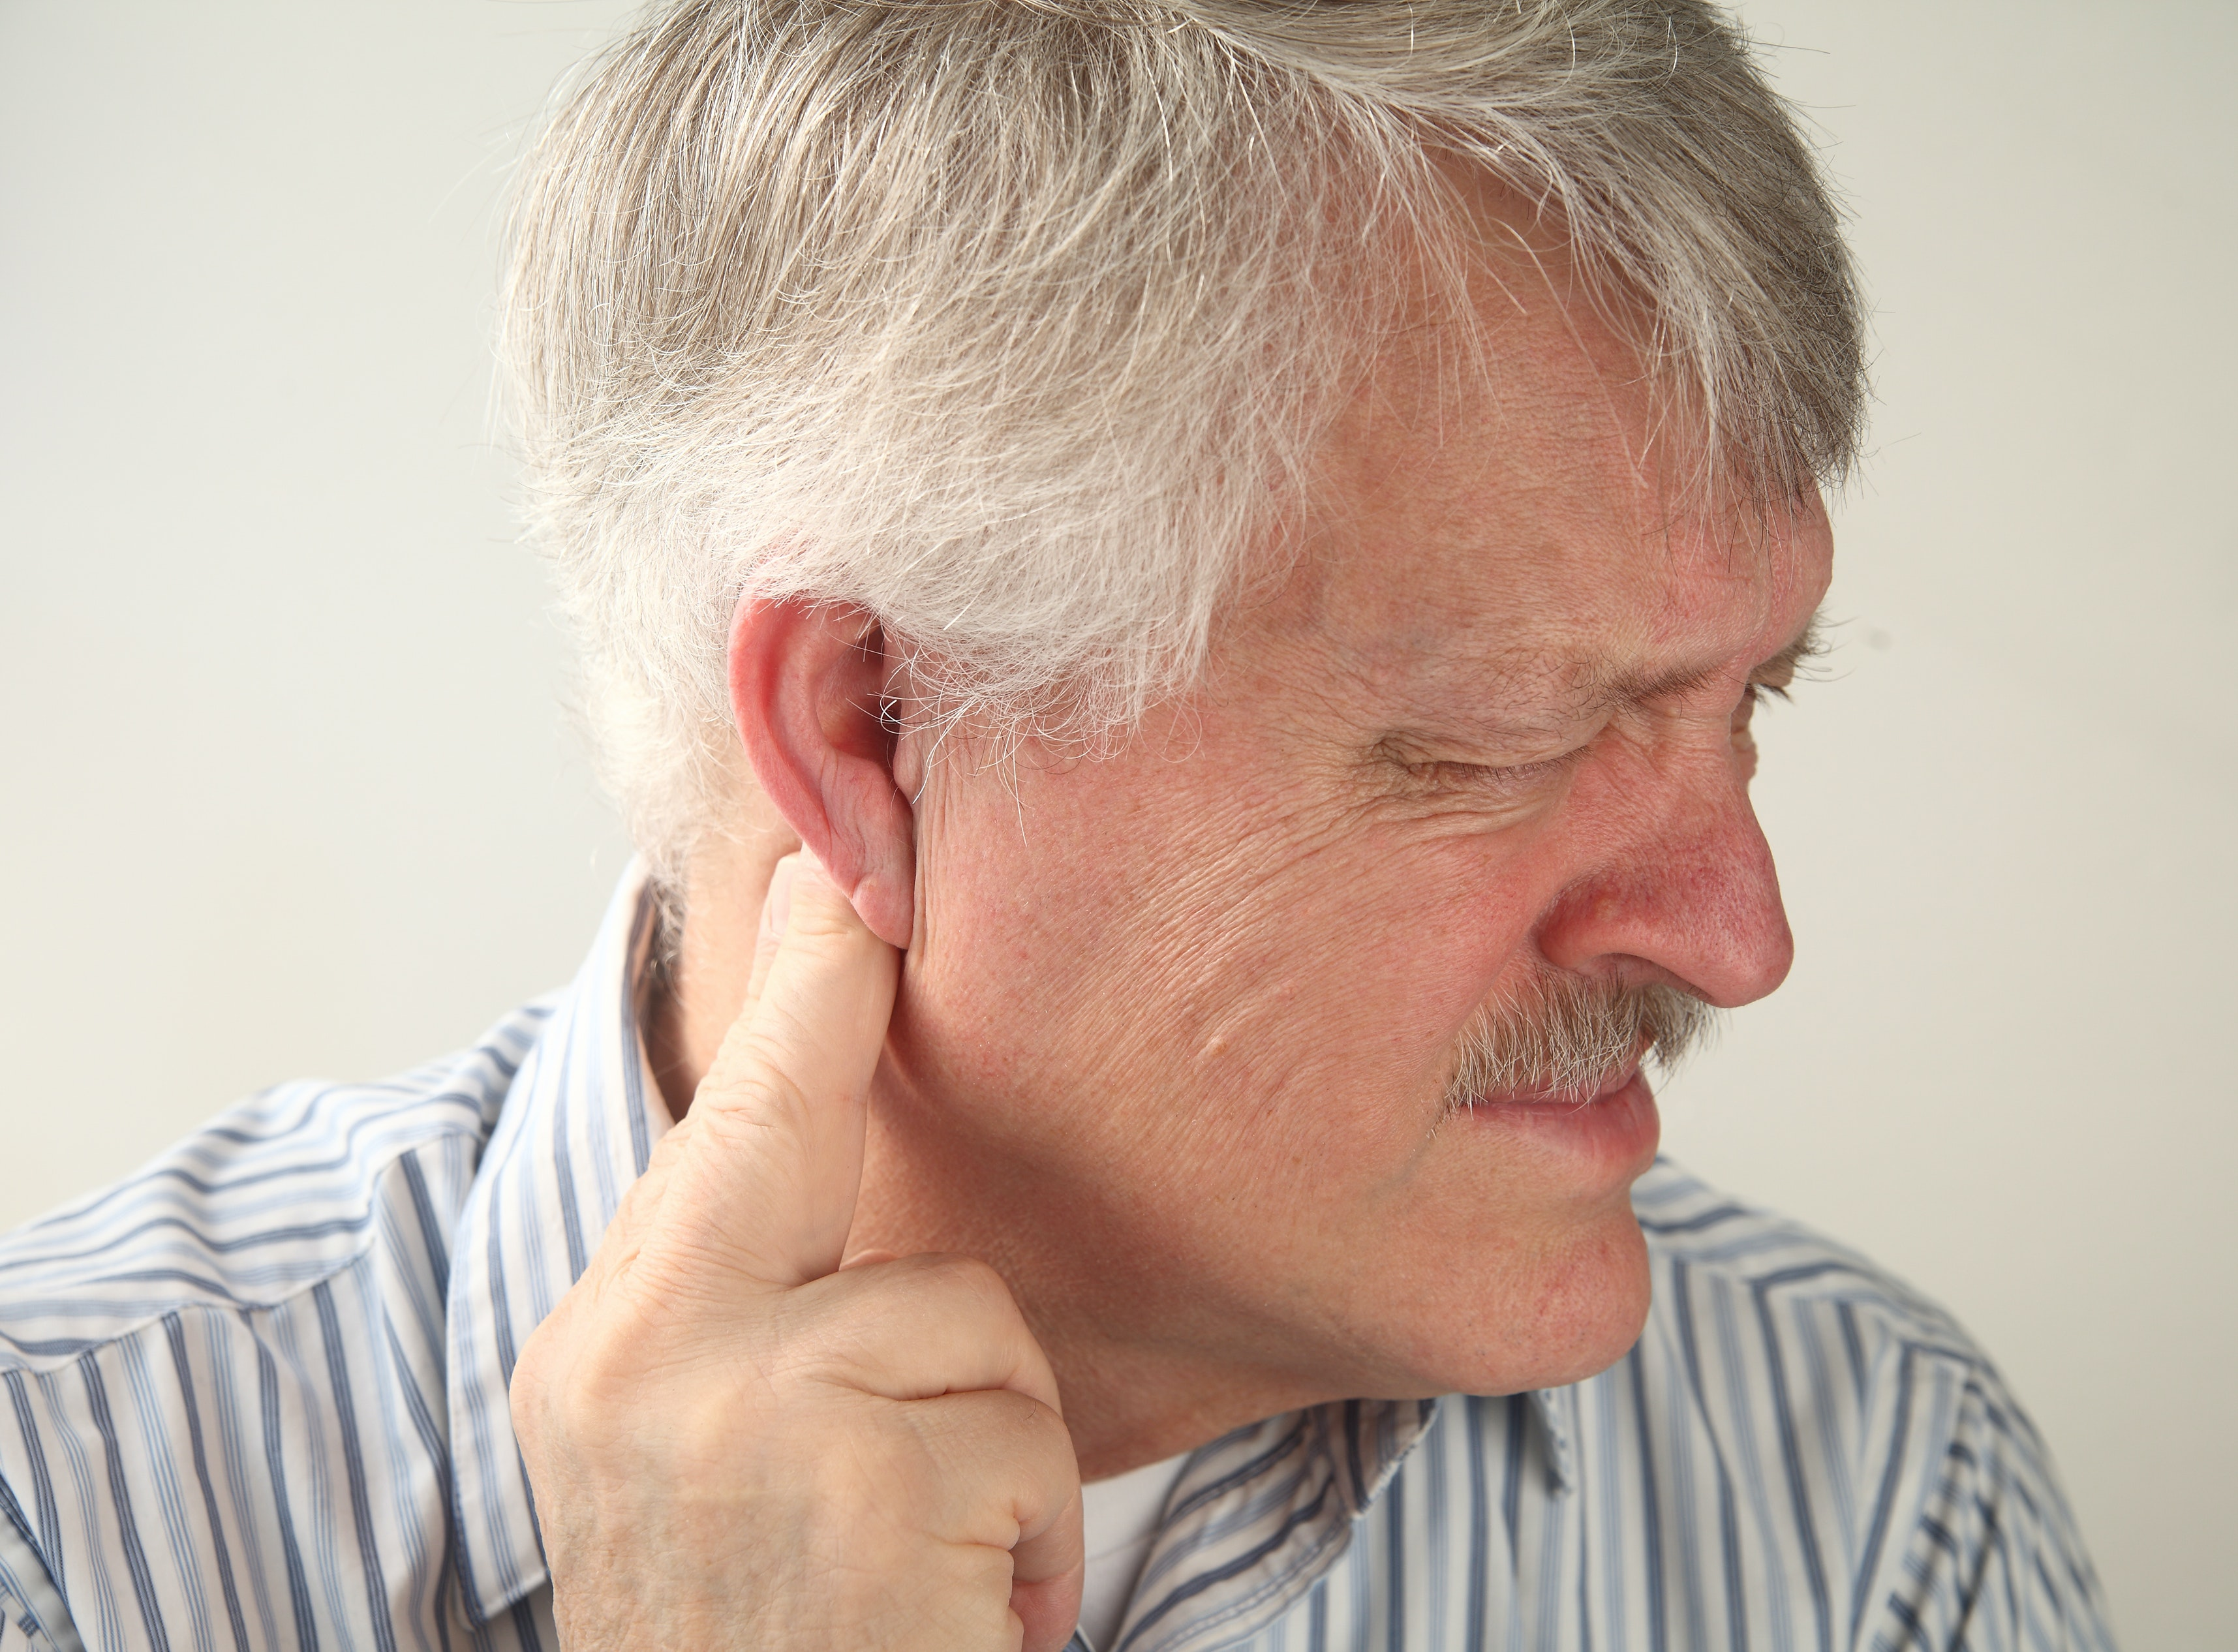 An image depicting a person suffering from pain behind the ear symptoms